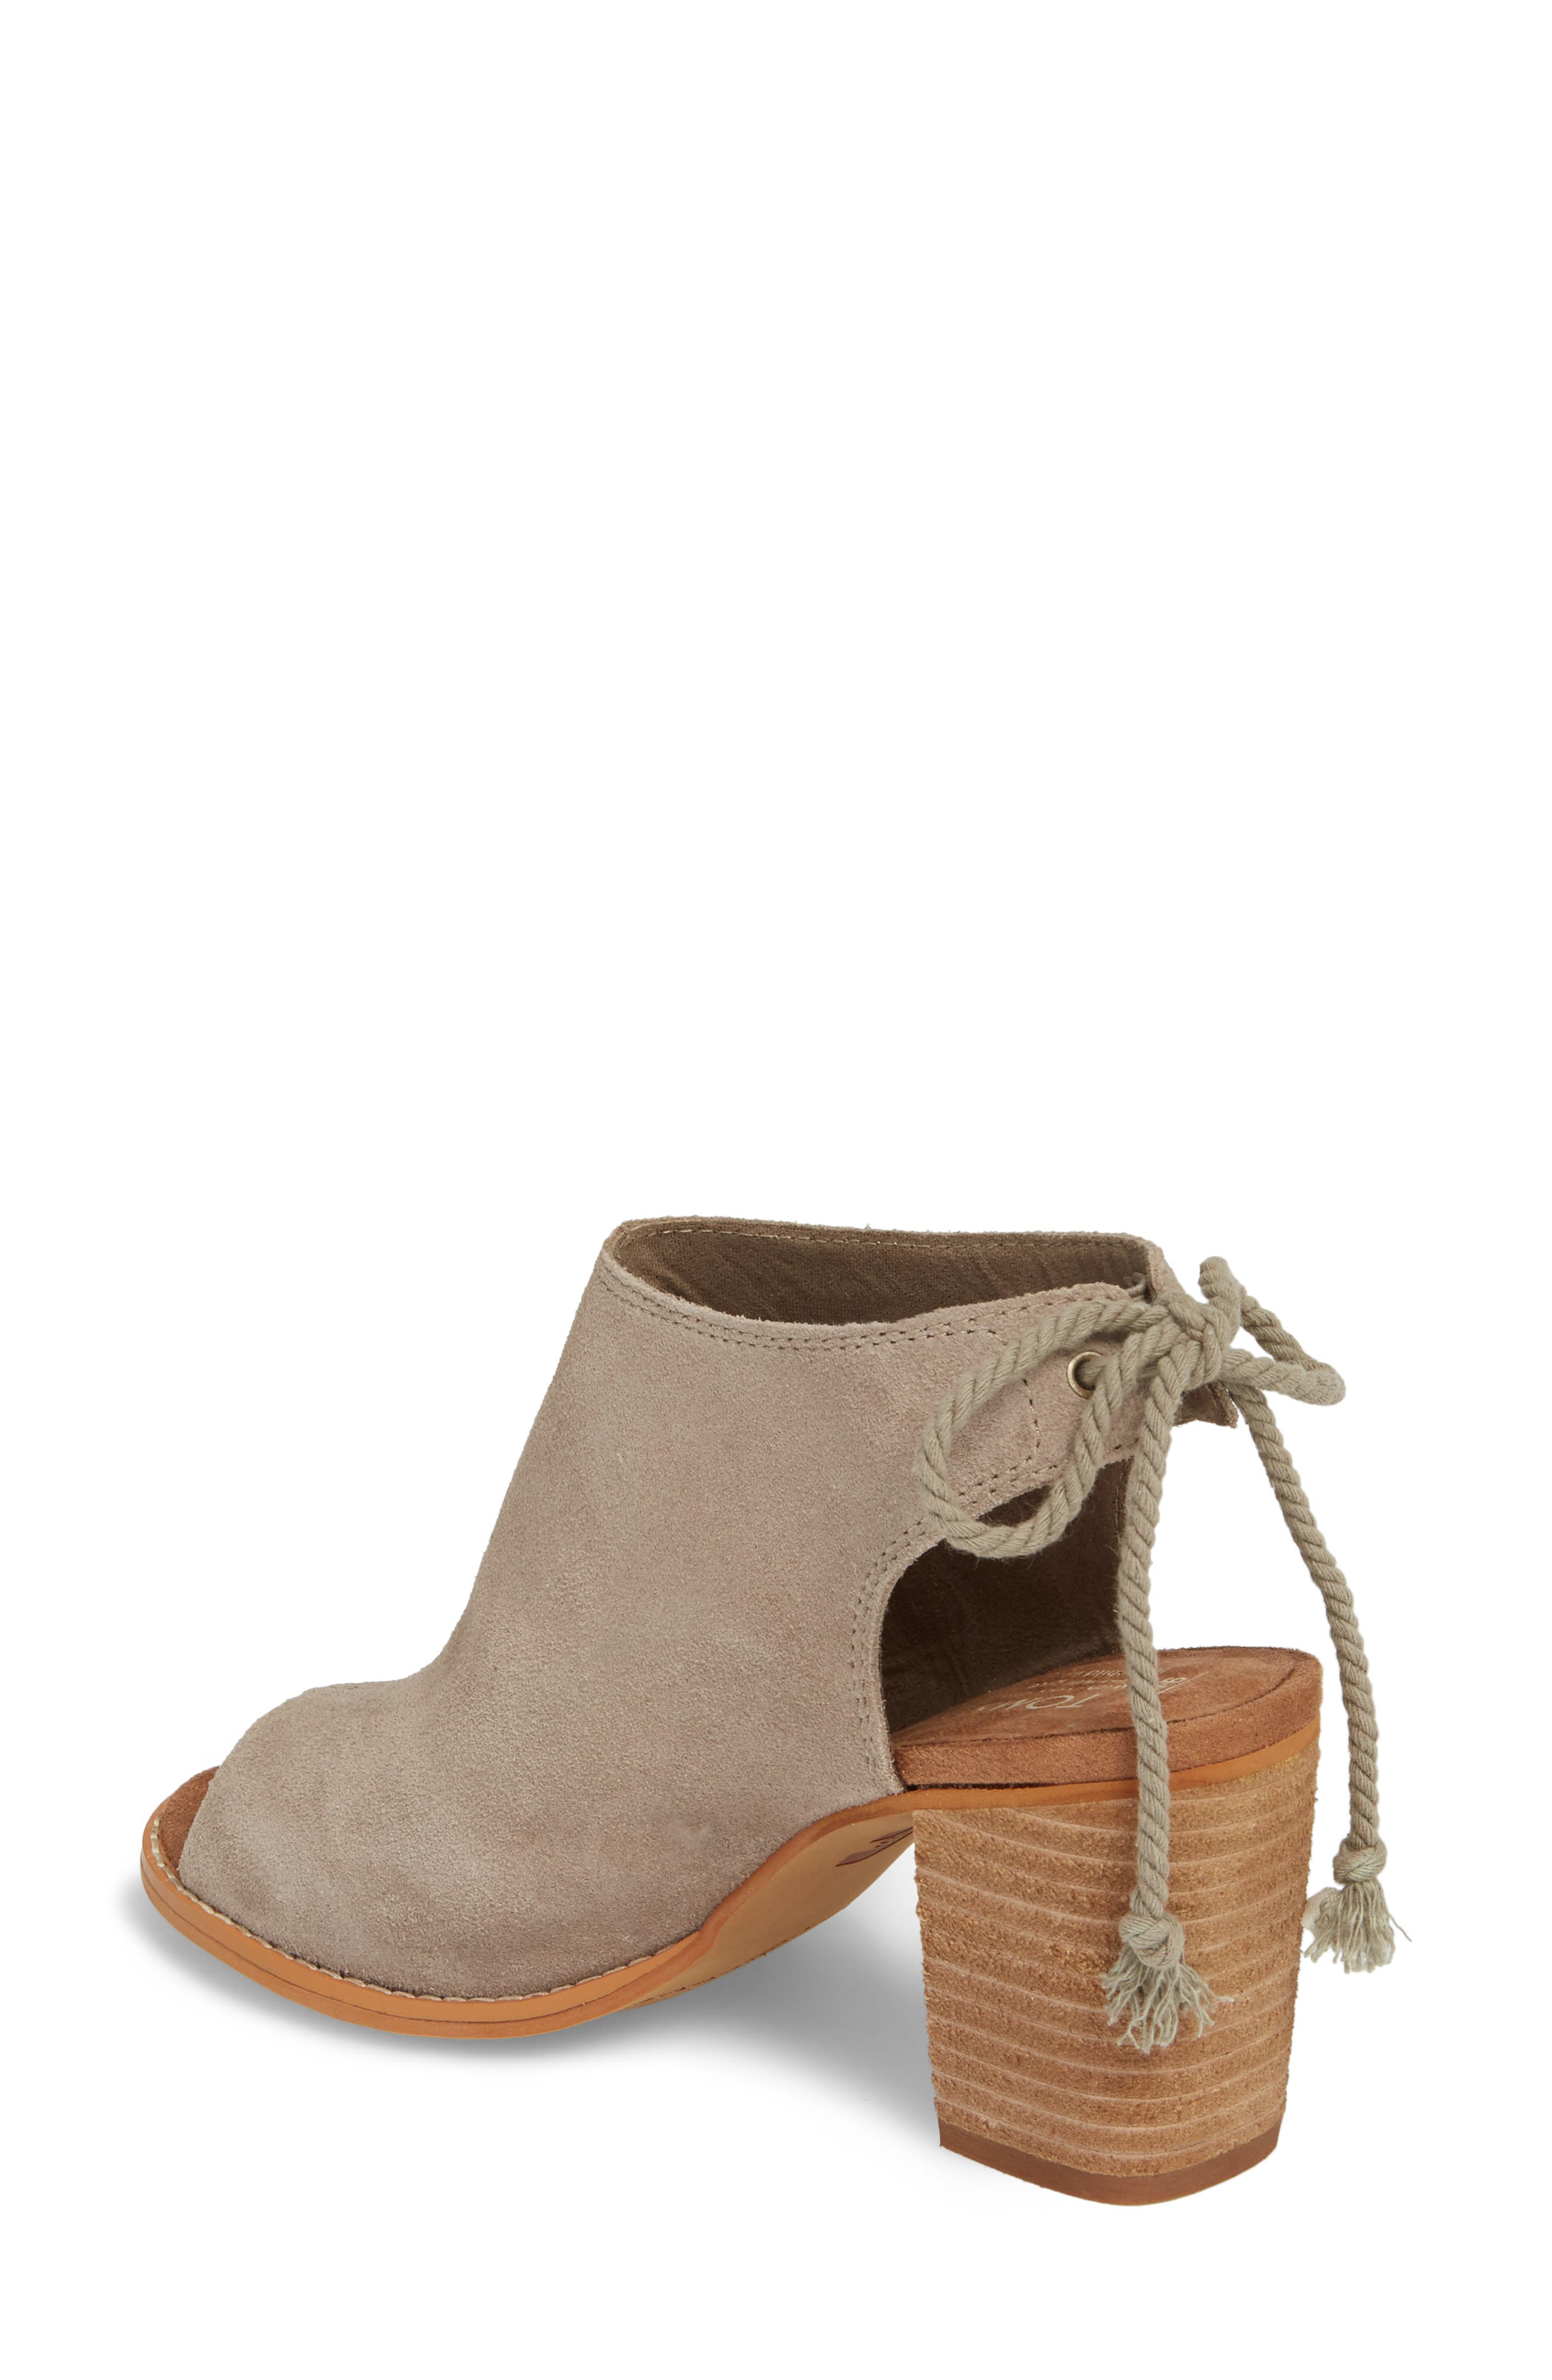 Elba Peep-Toe Bootie,                             Alternate thumbnail 2, color,                             DESERT TAUPE SUEDE